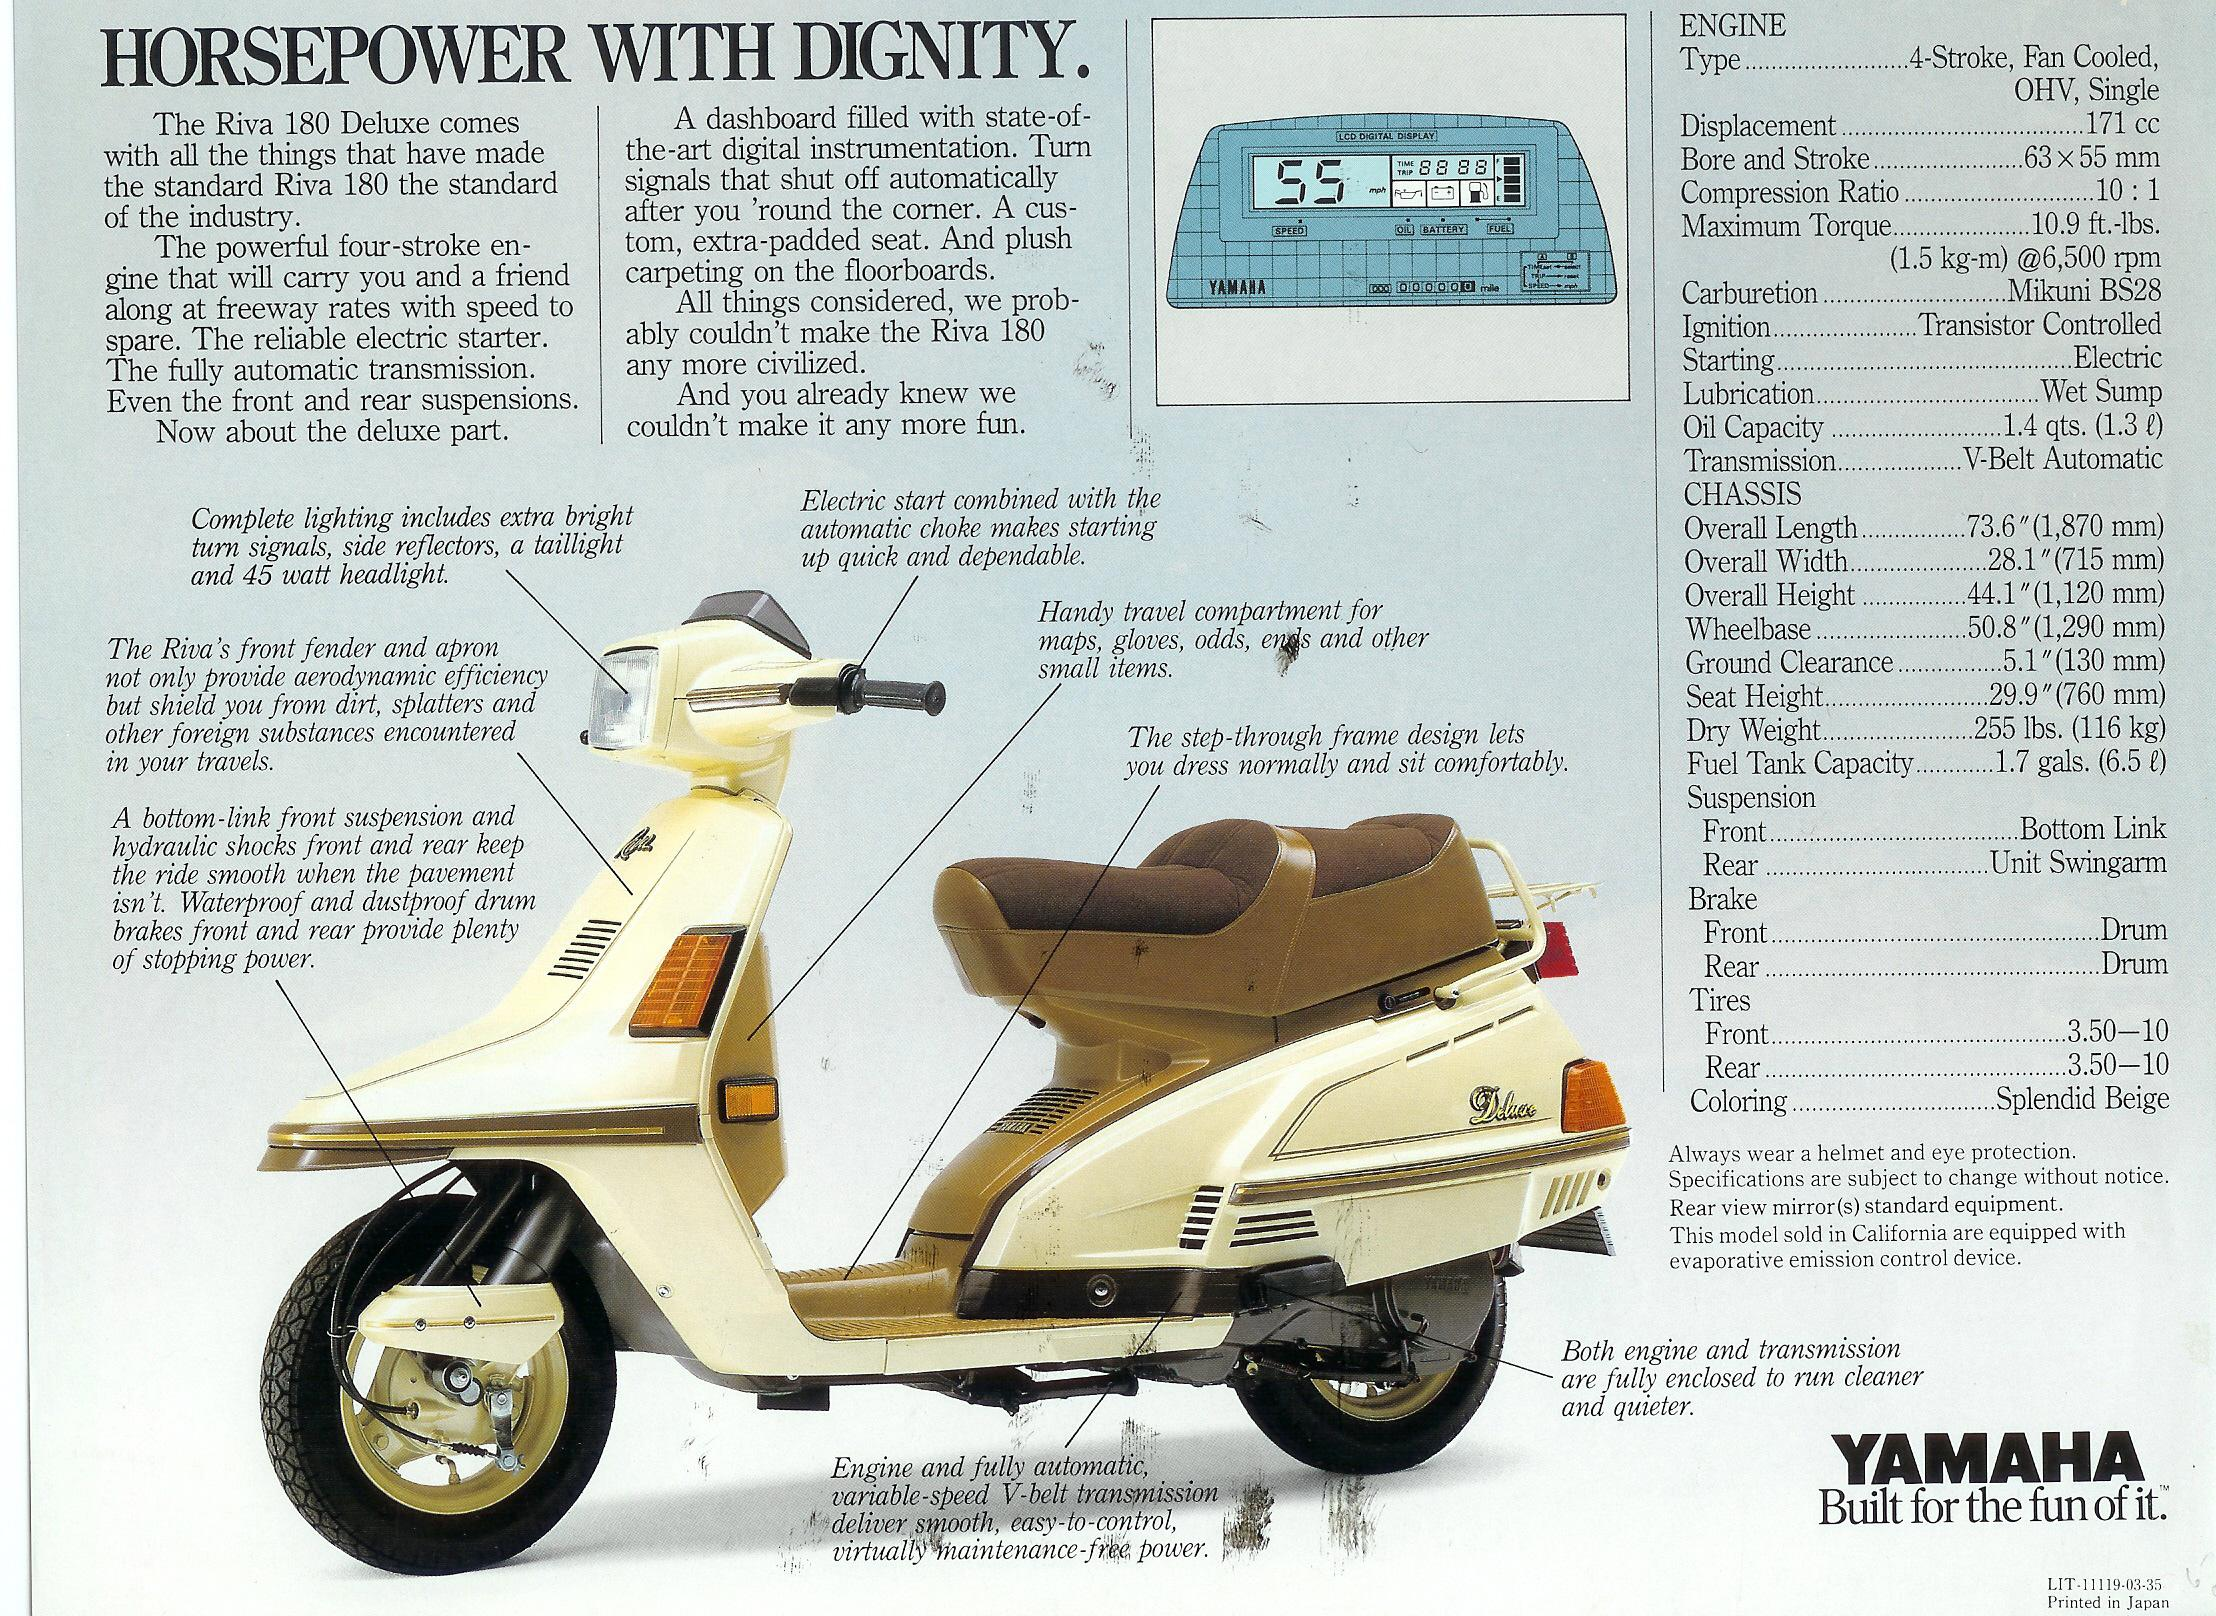 Yamaha Riva 180 200 Motor Scooter Guide Engine Diagrams Ad2